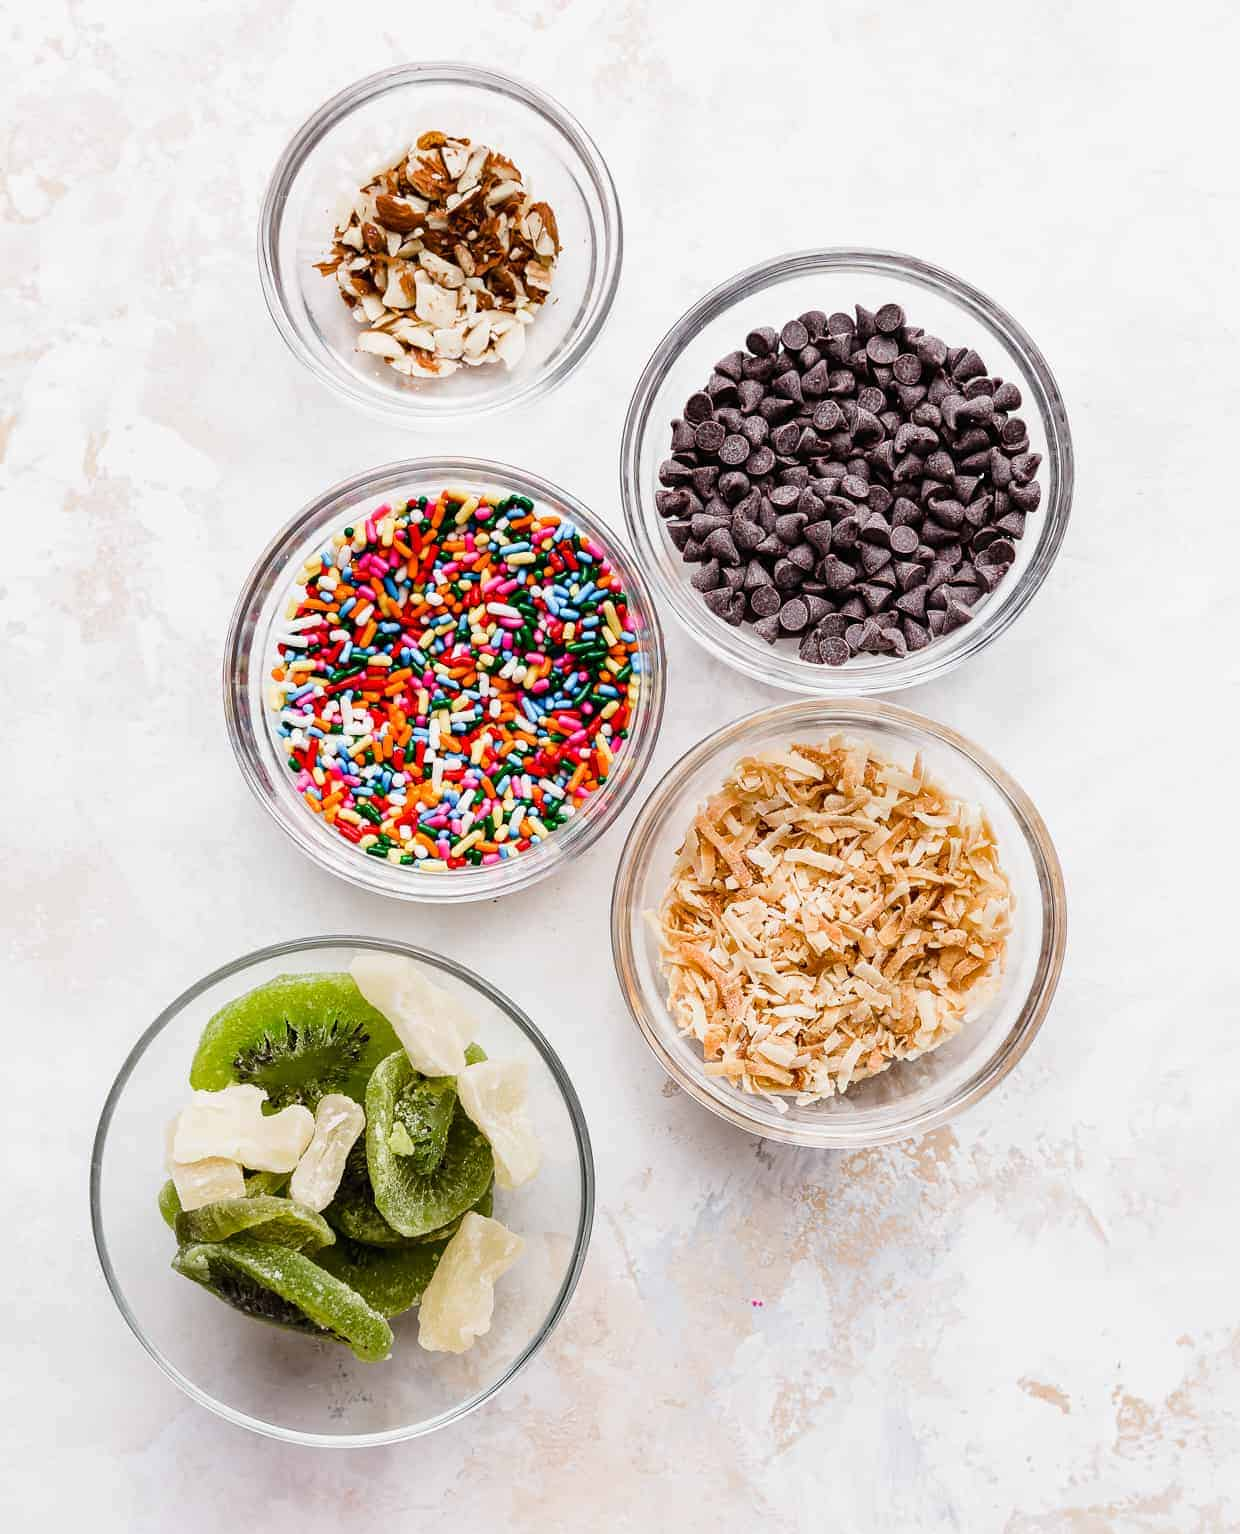 Glass bowls full of toppings such as sprinkles, toasted coconut, mini chocolate chips, dried fruit, and nuts.